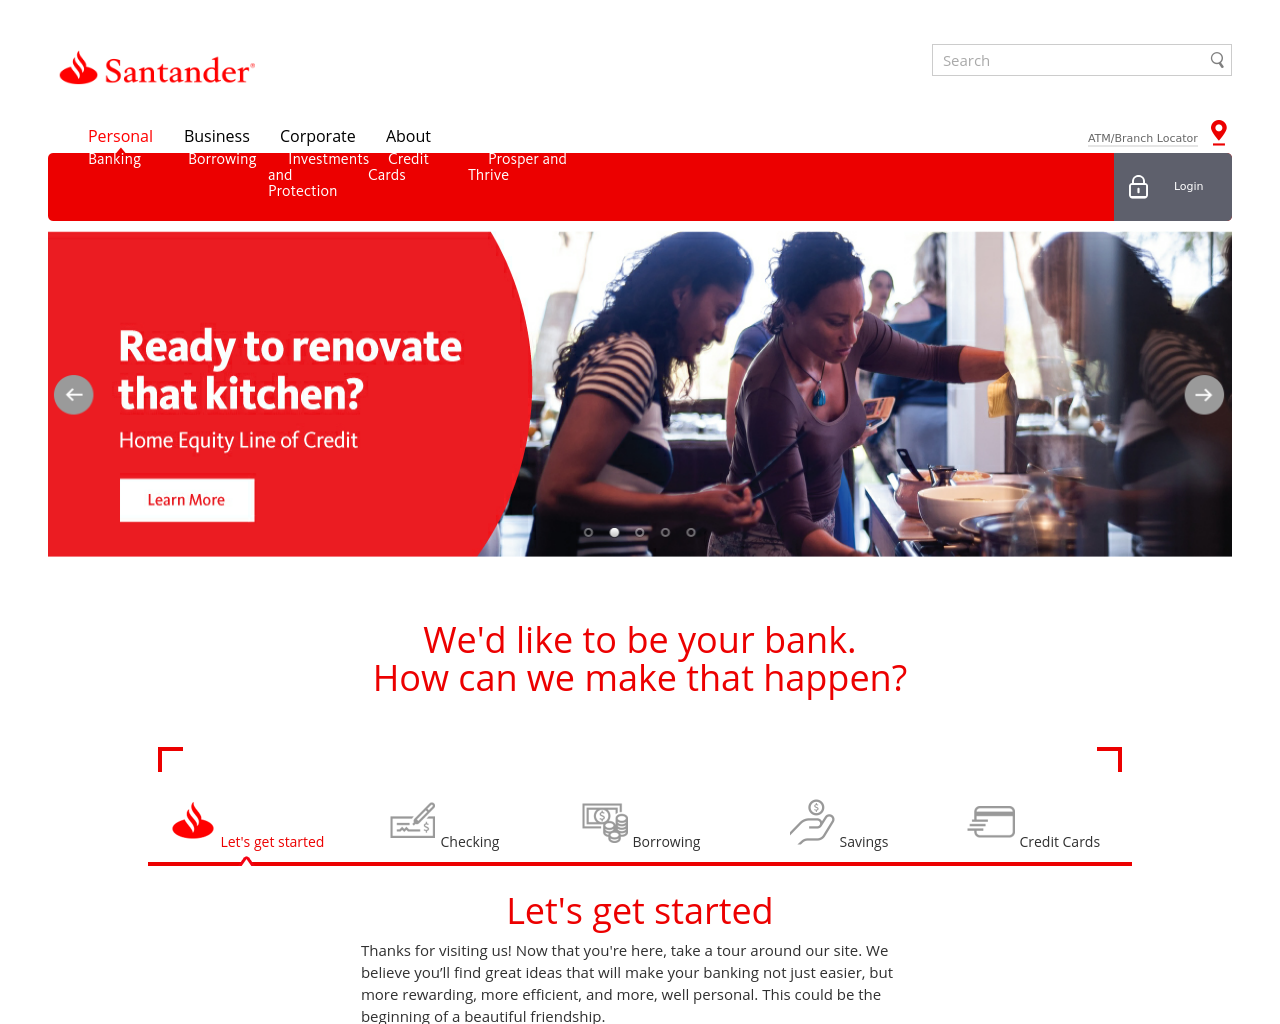 Santander-Advertising-Reviews-Pricing